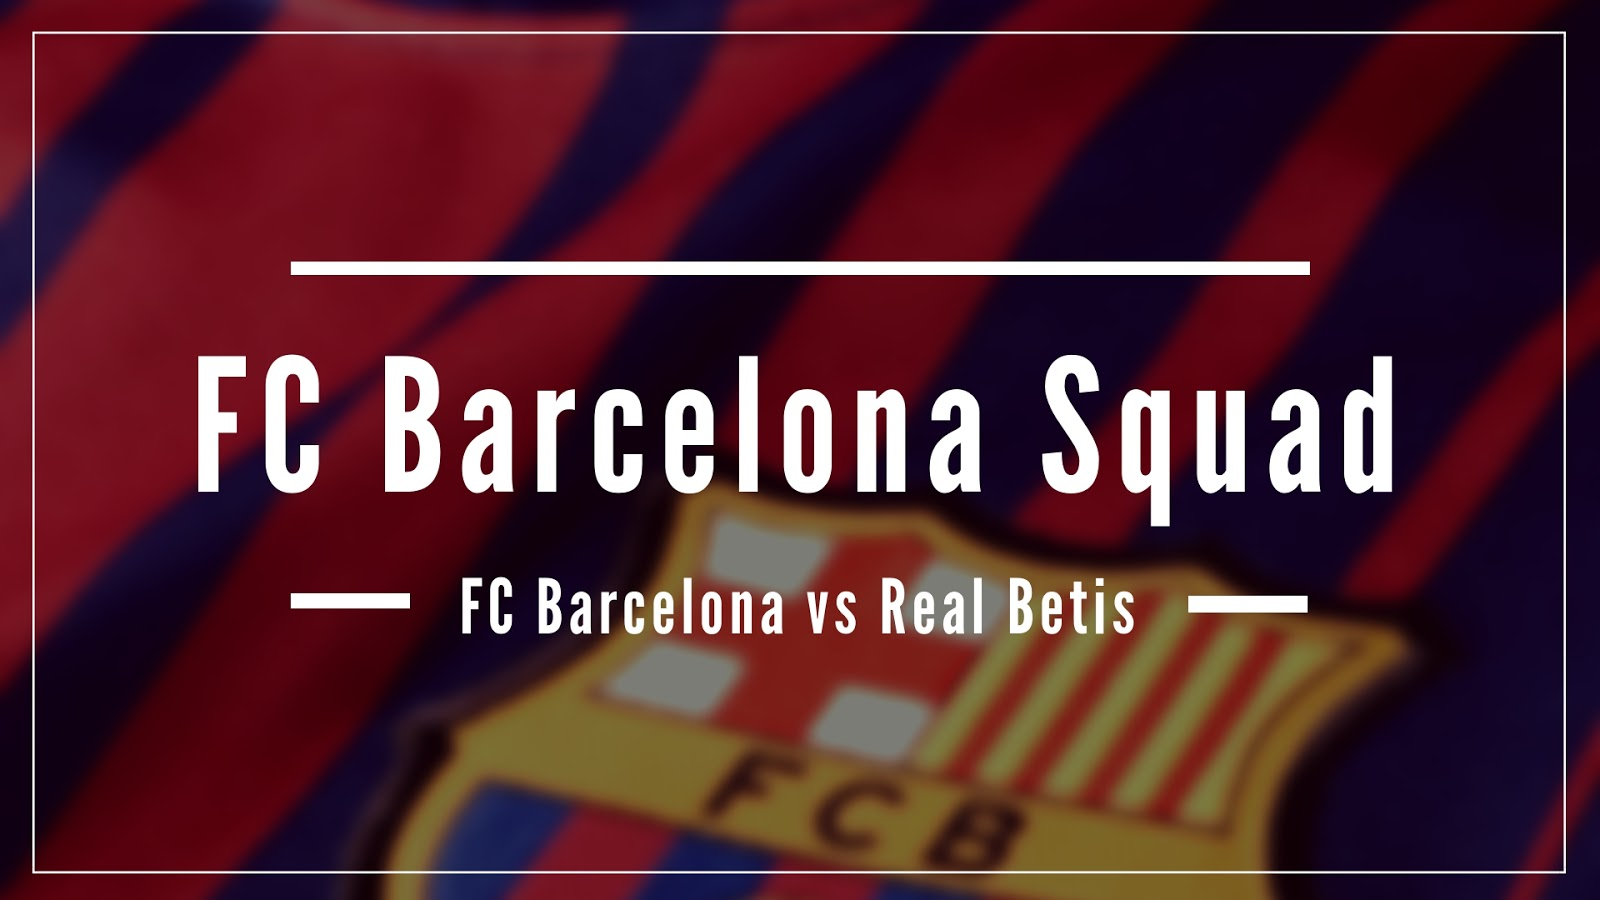 FC Barcelona Squad for Today's Match against Real Betis #FCBarcelonaSquad #FCBarcelona